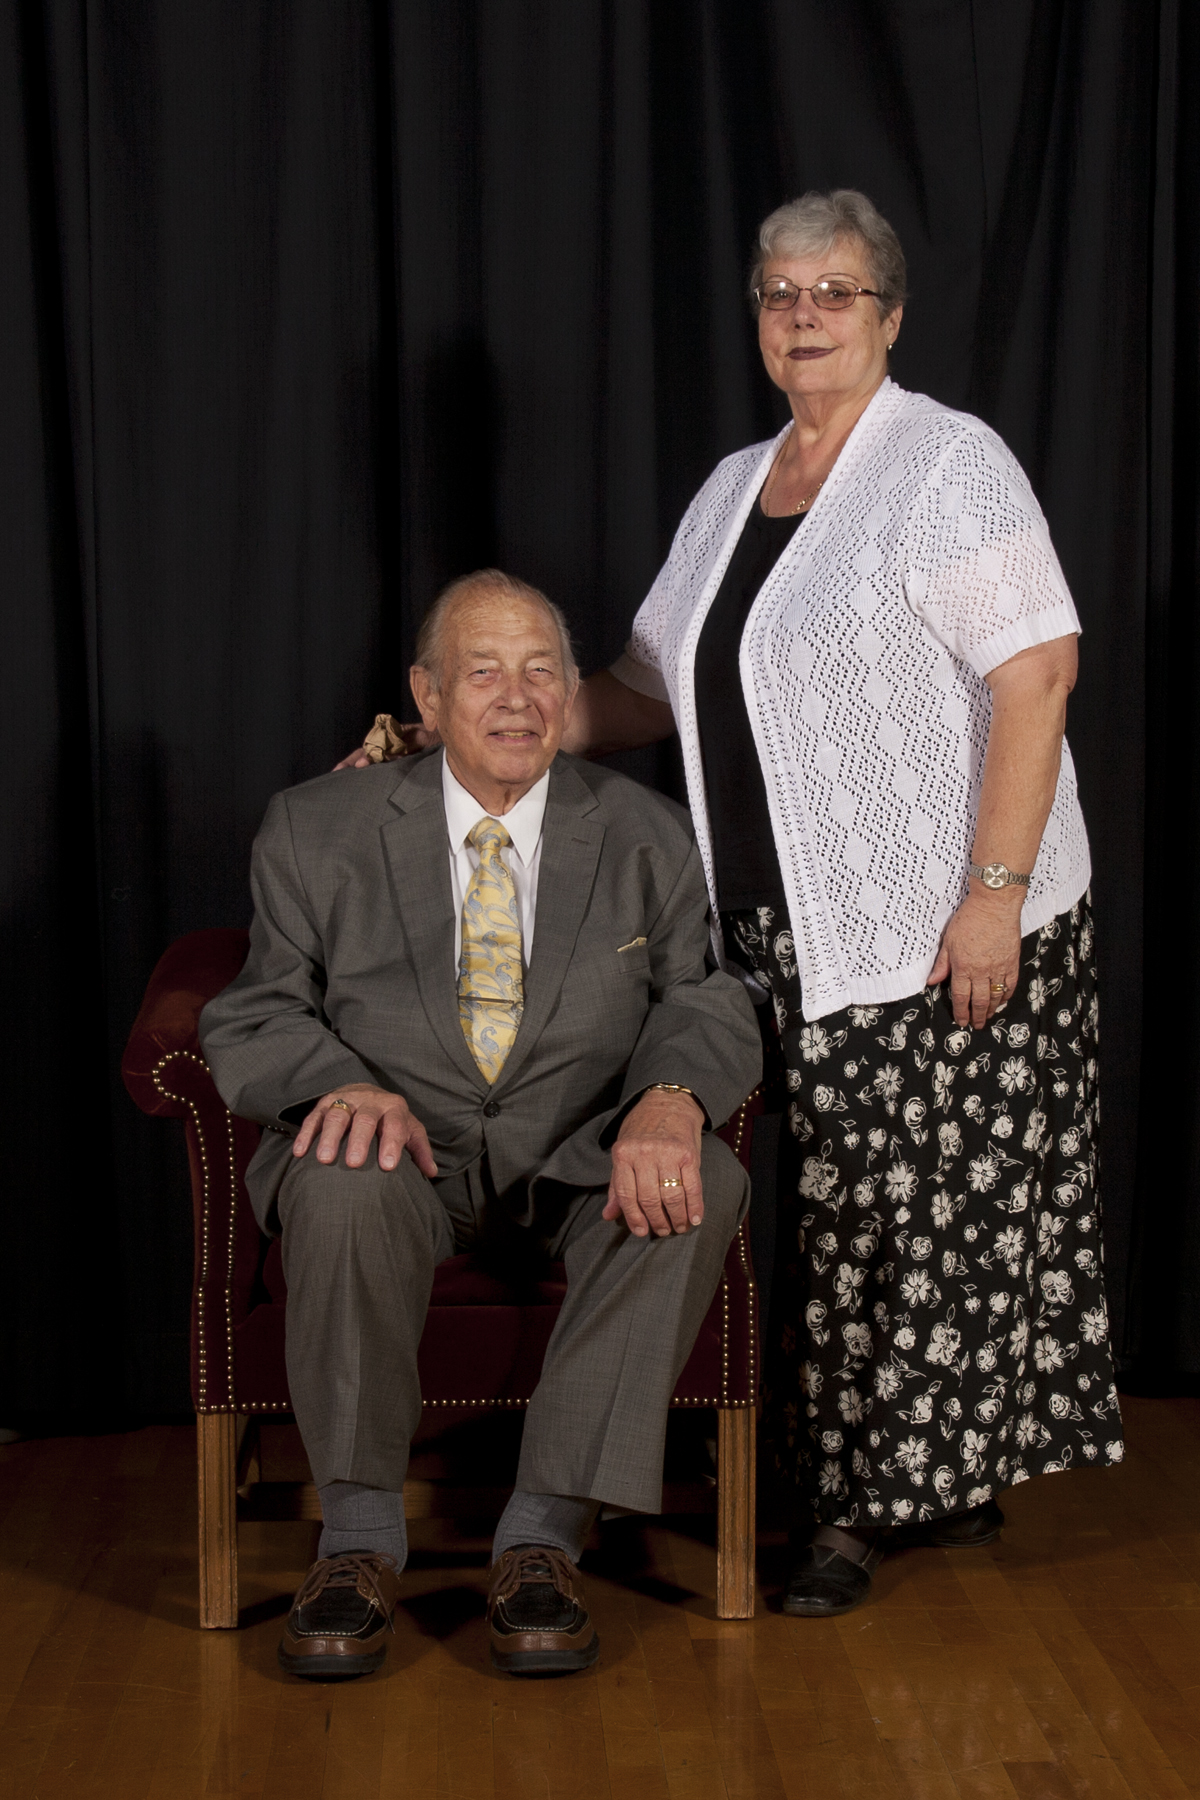 Bishop Volker Diethelm Hagen of the German Speaking Ward and his wife, Sister Gisa Hagen, pose for a photograph taken by former ward member Frank A. Langheinrich, who took a number of organizational photos for distribution on the ward's final day.